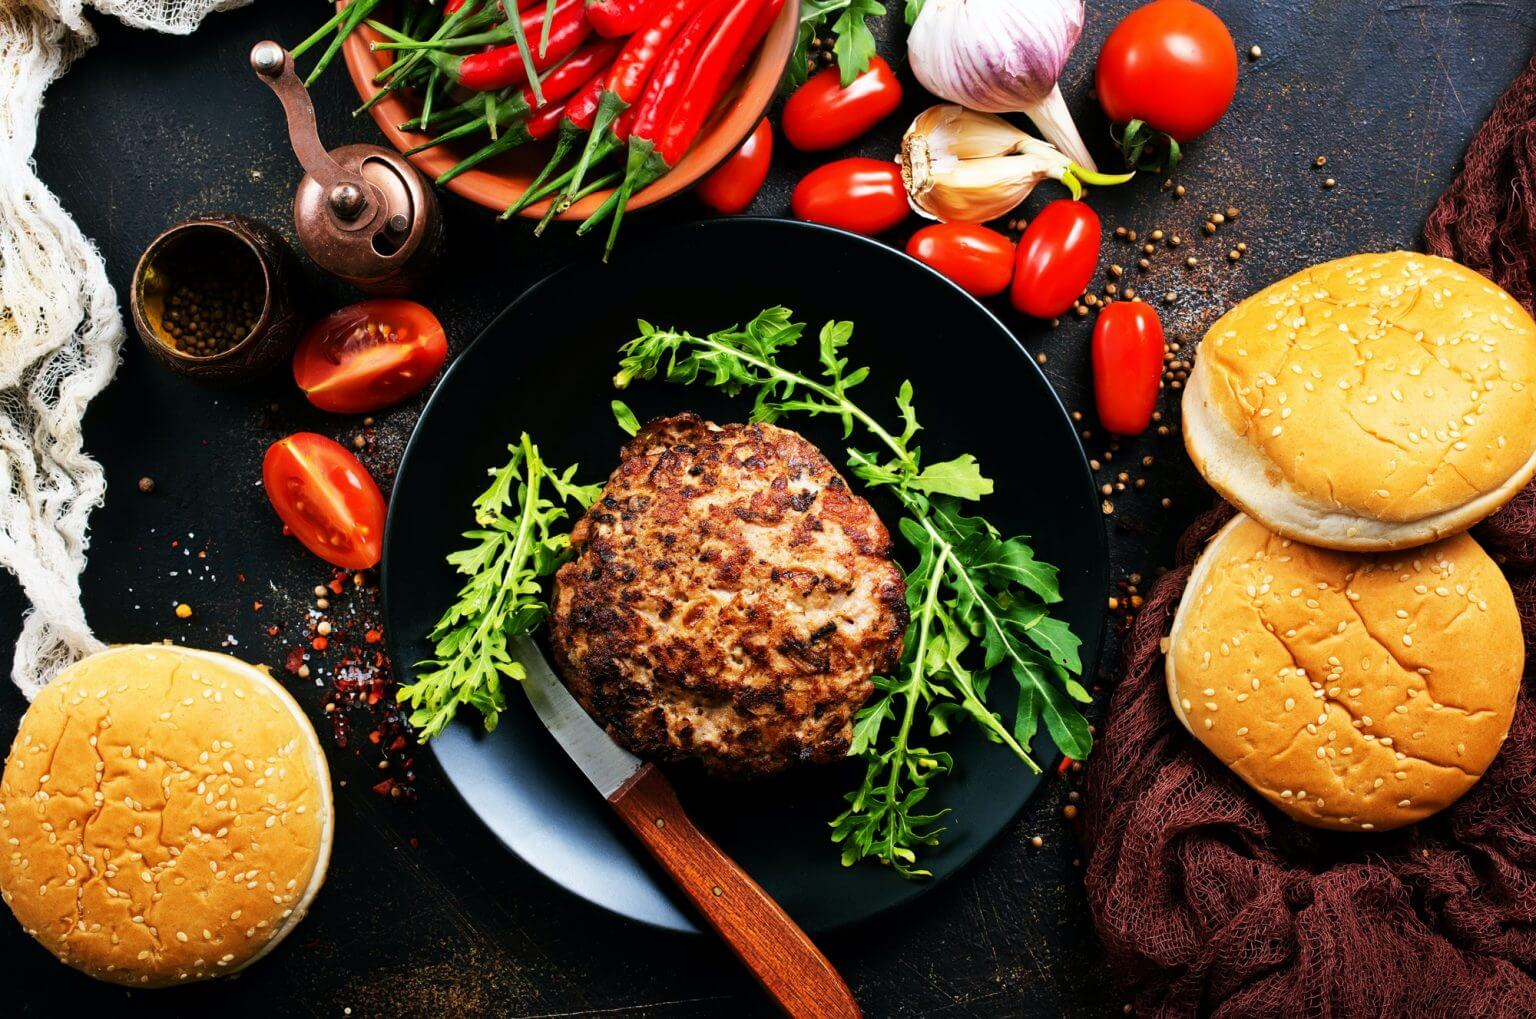 ingredients for burgers